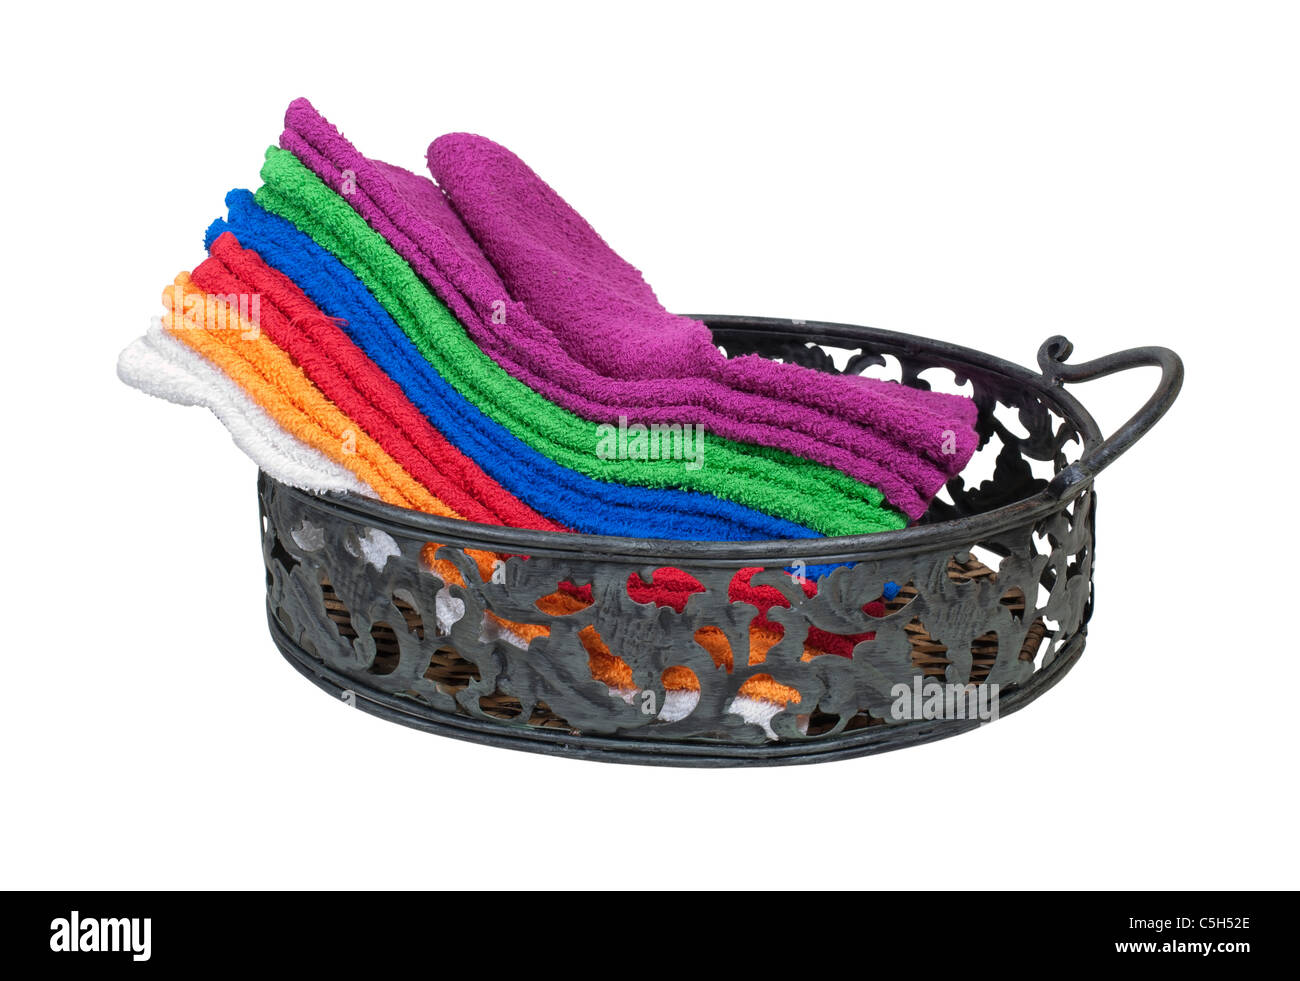 Collection of colorful towels for everyday use in a serving tray - path included - Stock Image